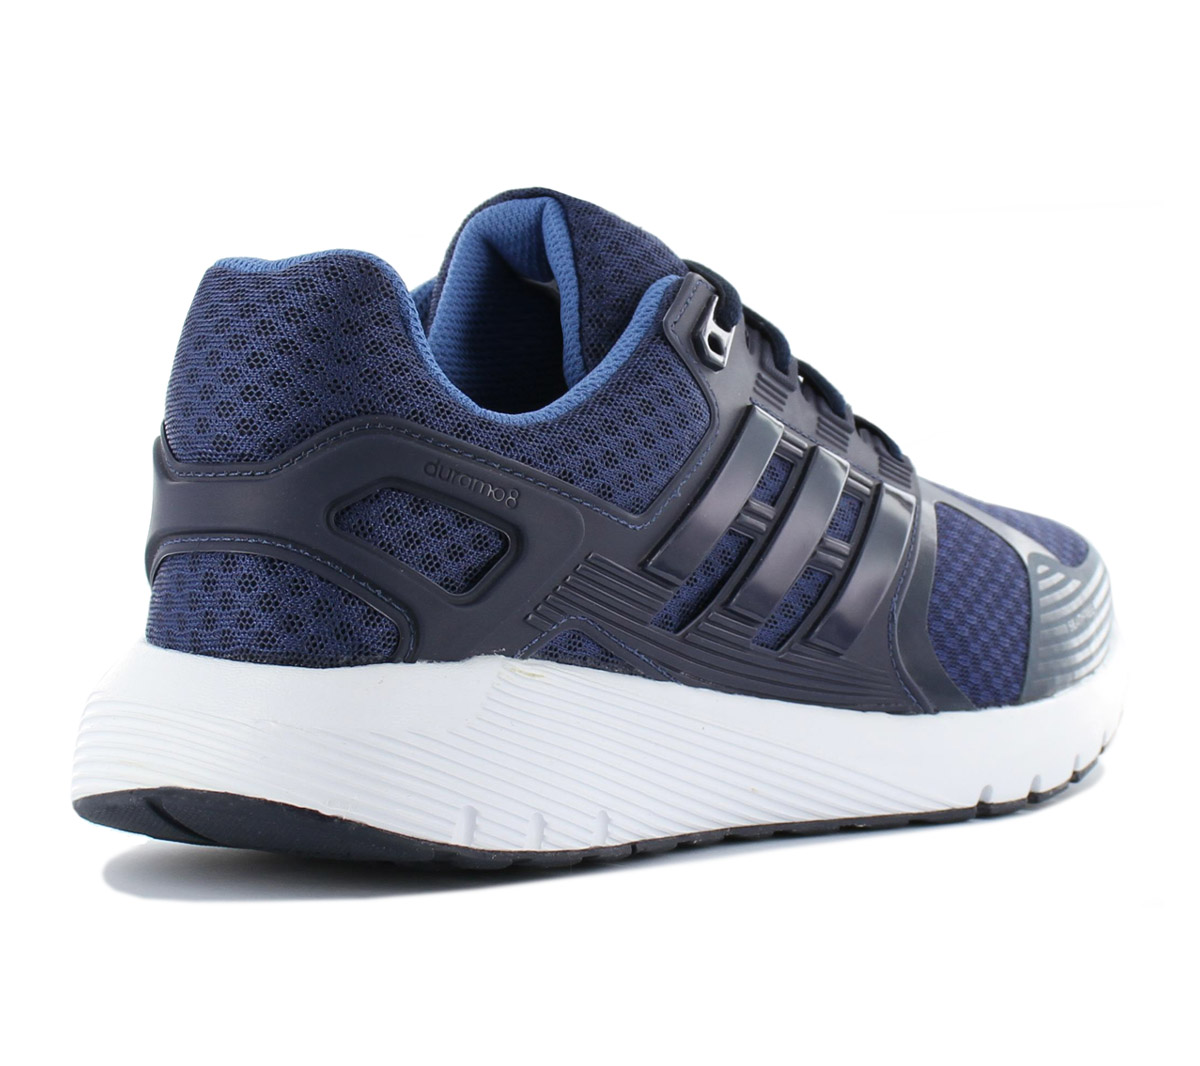 Details about Adidas Duramo 8 M Men's Running Shoes CP8742 Blue Sport Fitness New